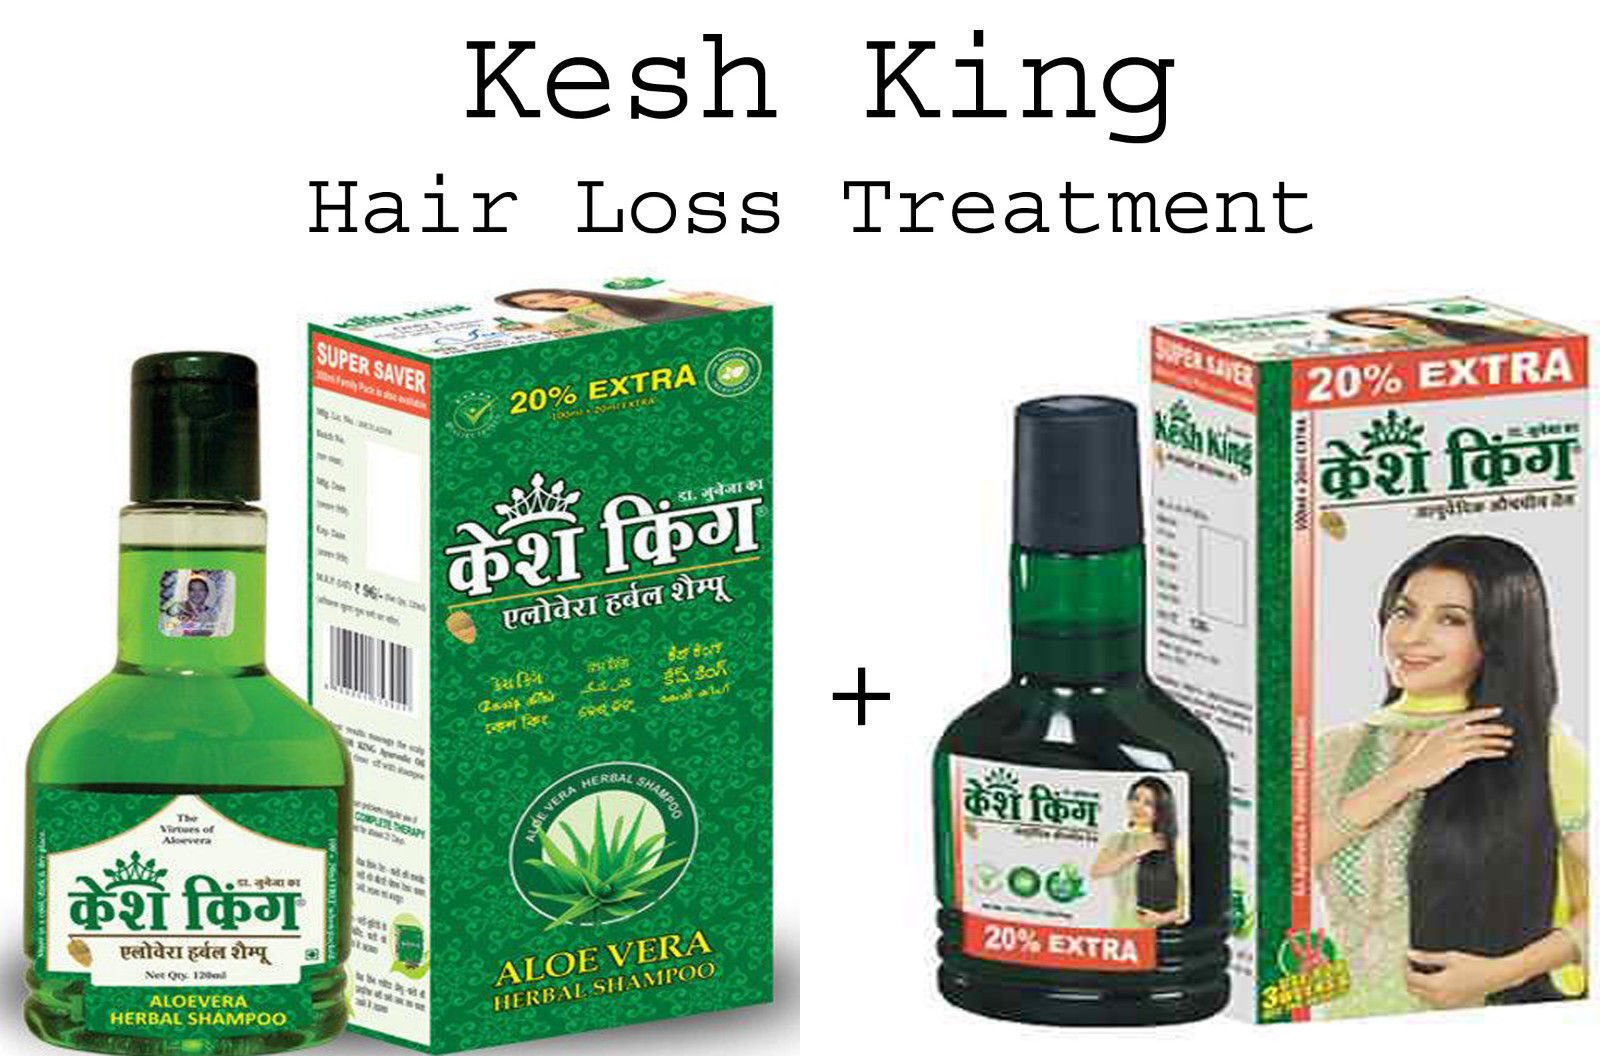 20 PACK KESH KING Herbal HAIR LOSS Complete Treatment (OIL+ SHAMPOO)